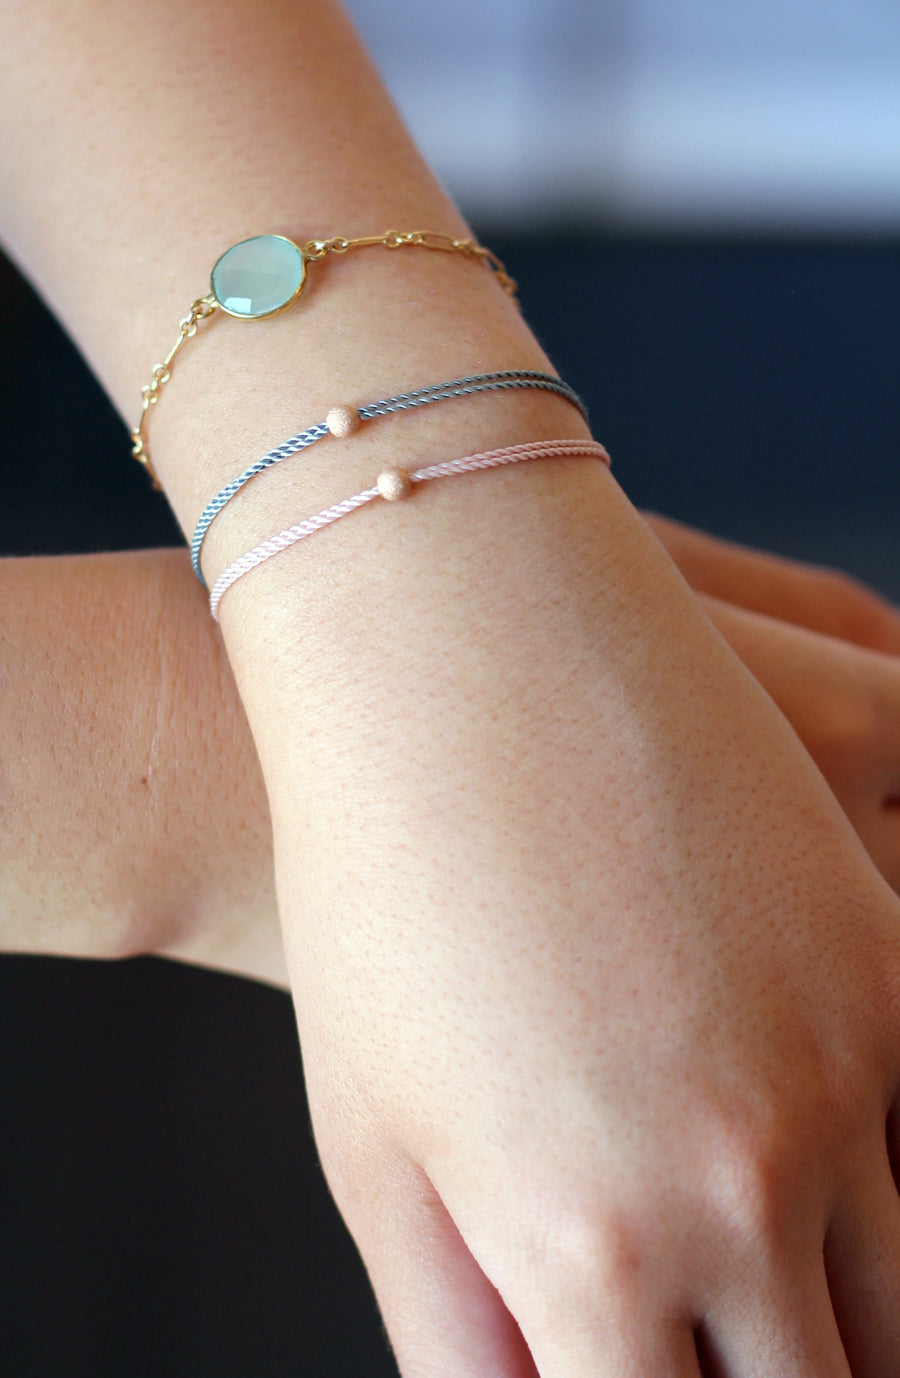 nylon silk bracelets rose gold gold filled sterling silver friendship bracelets | MAE MAE JEWELRY